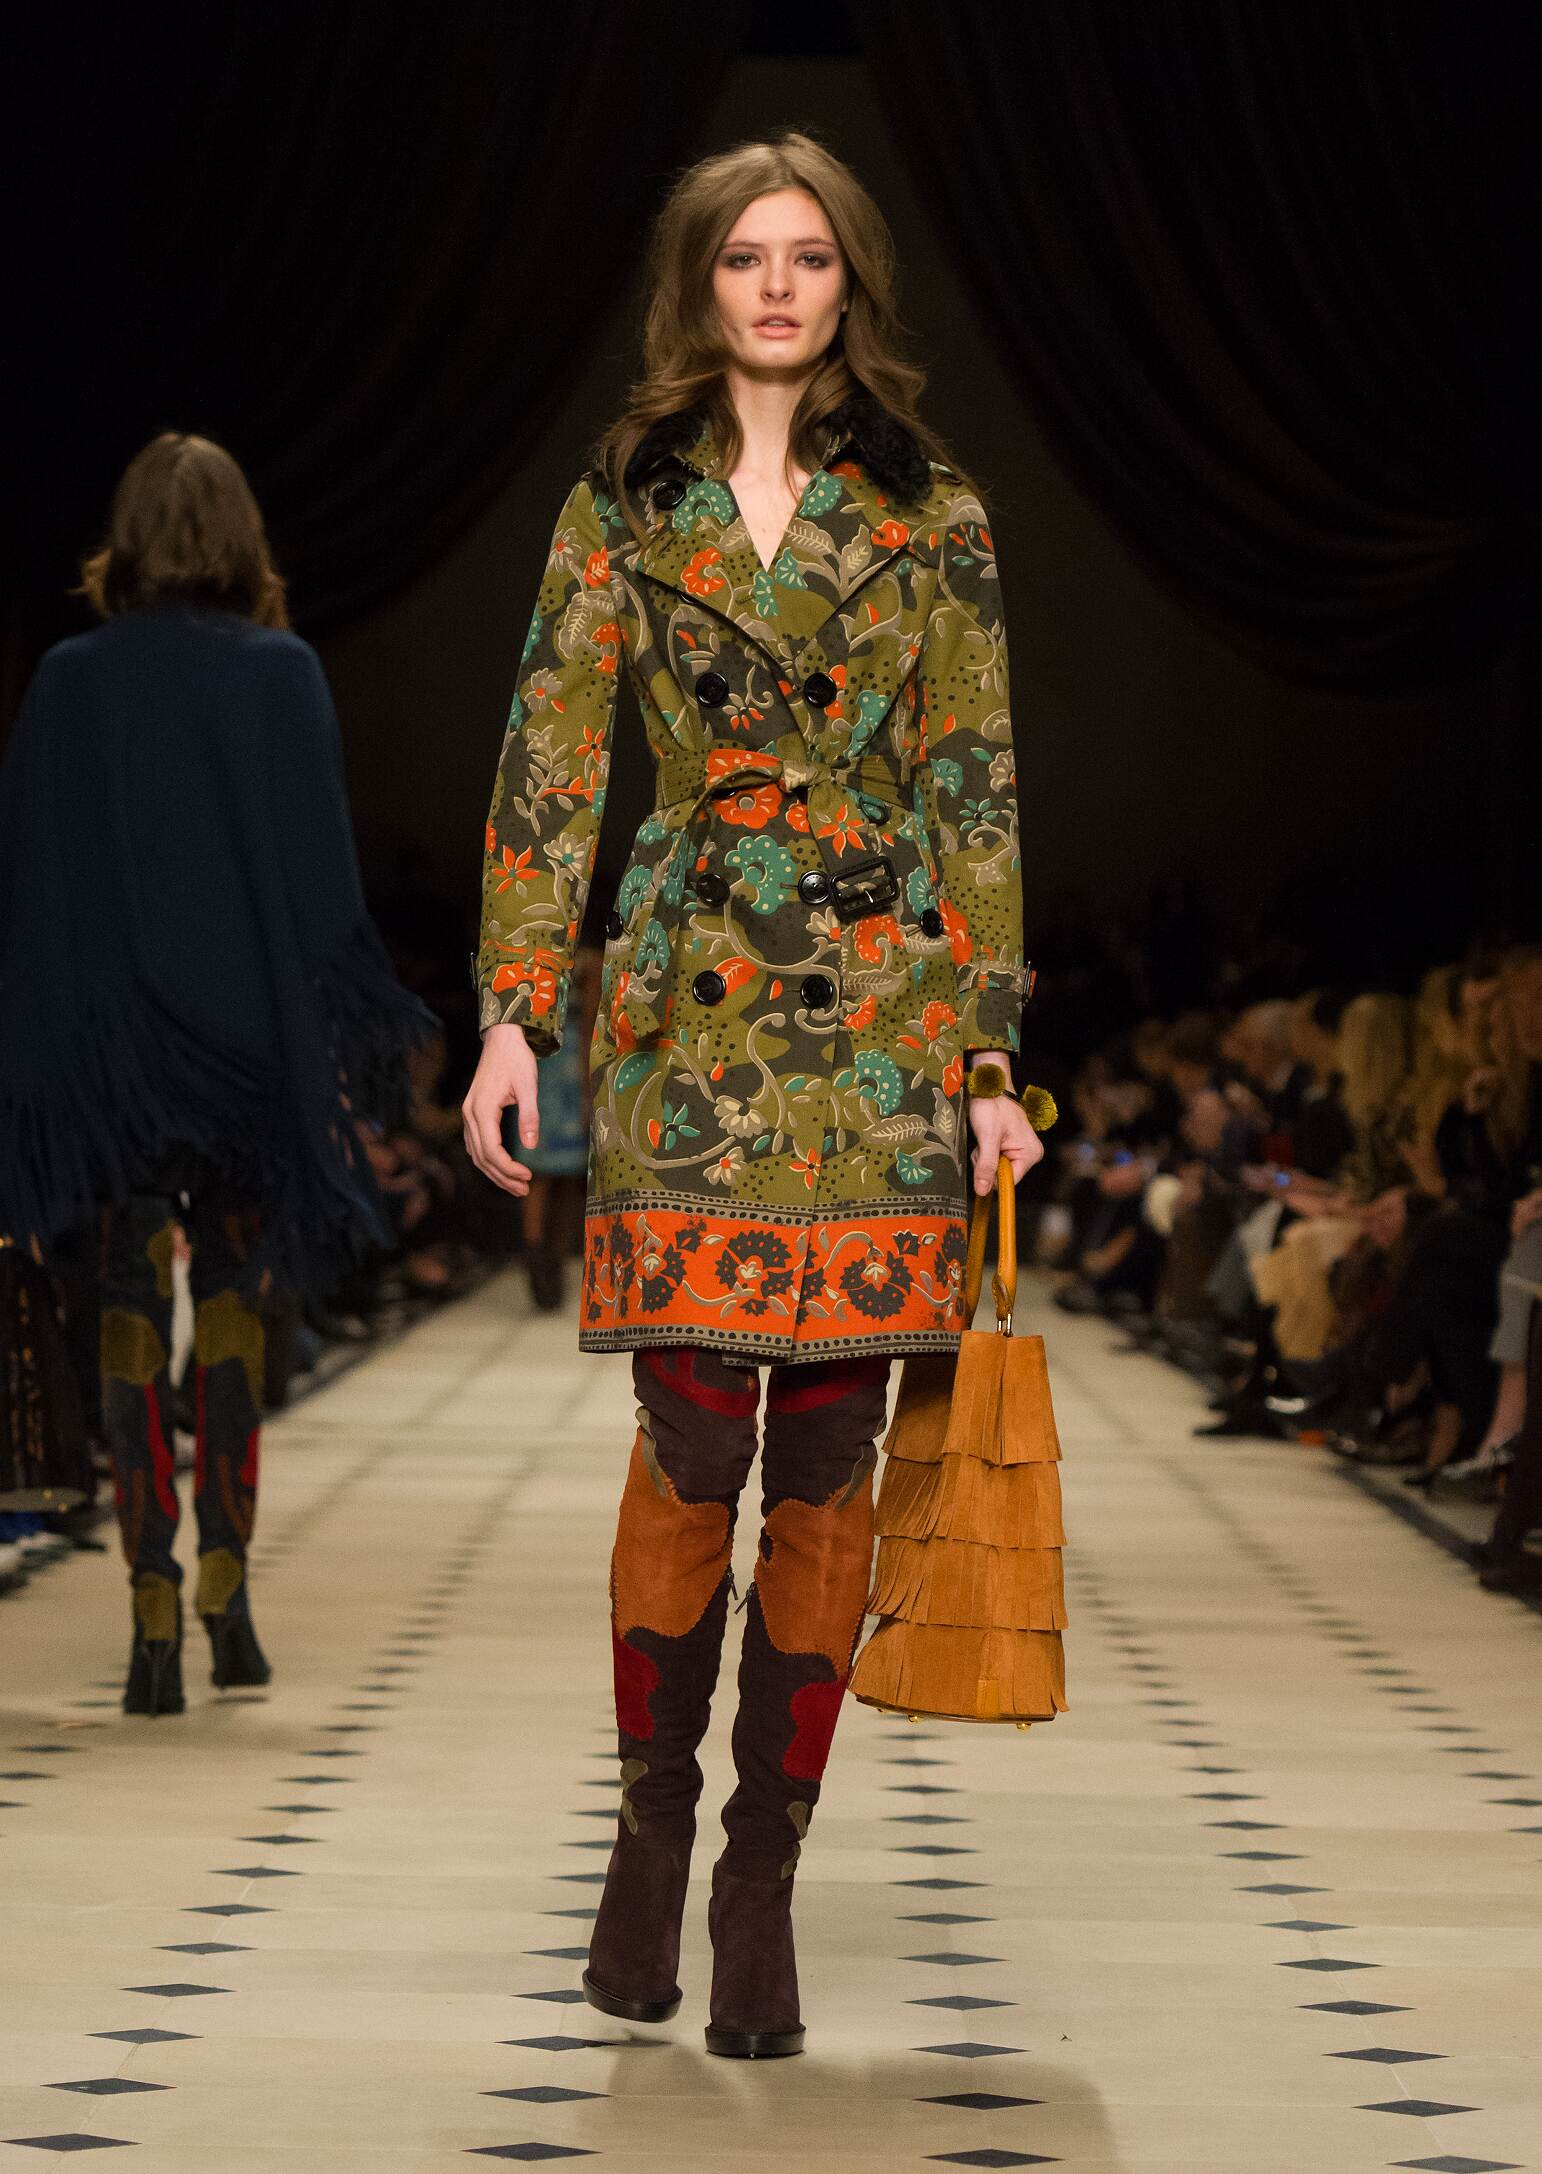 Fashion Trends Autumn Winter 2015/16